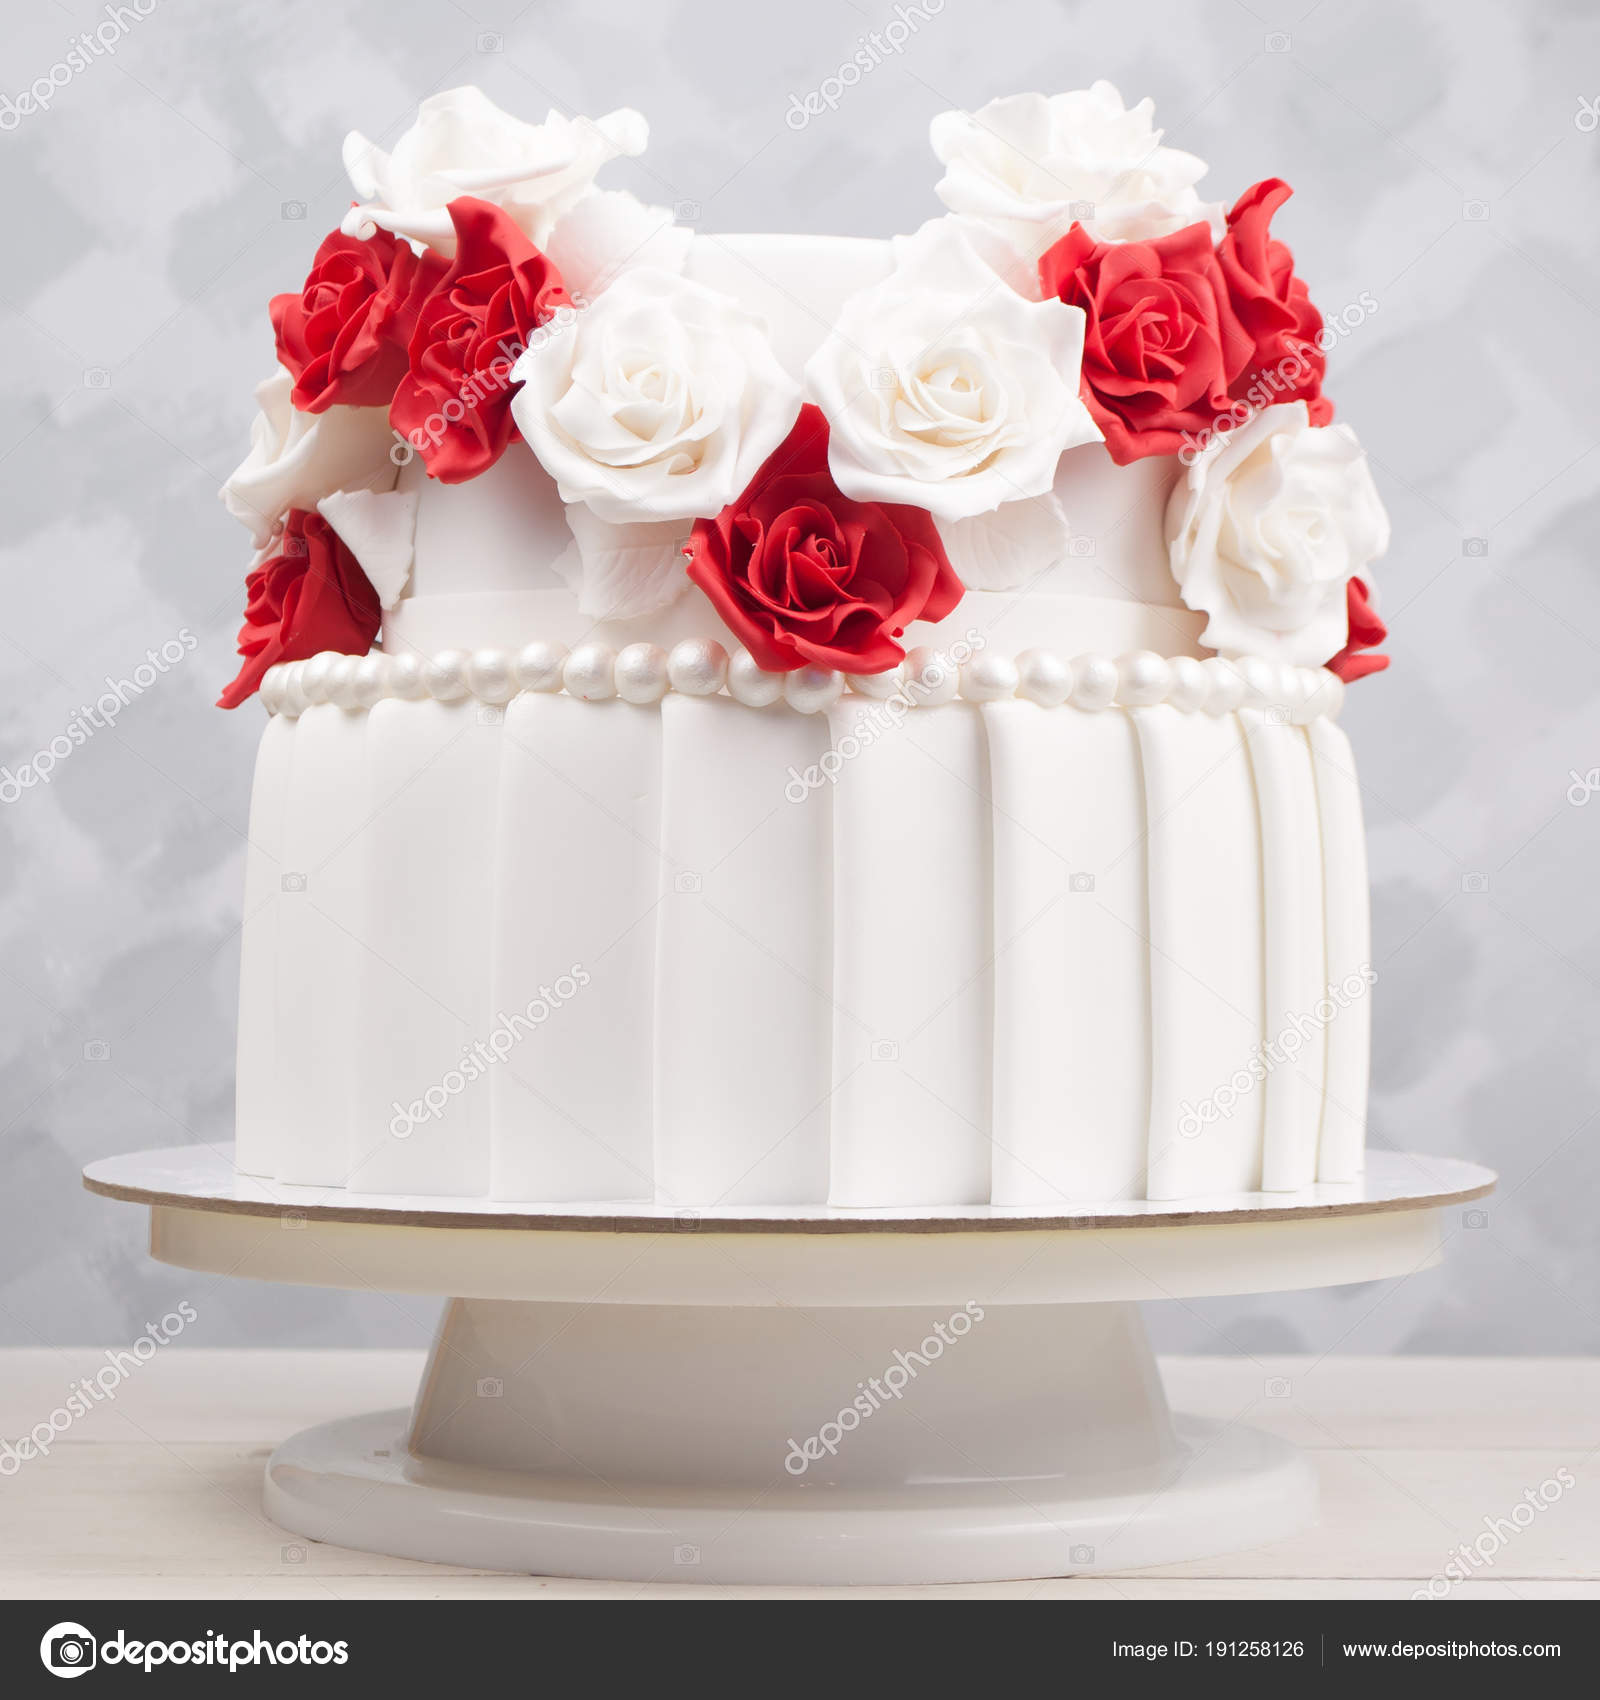 Two Tiered Wedding Cake Decorated Red White Flowers Mastic White ...